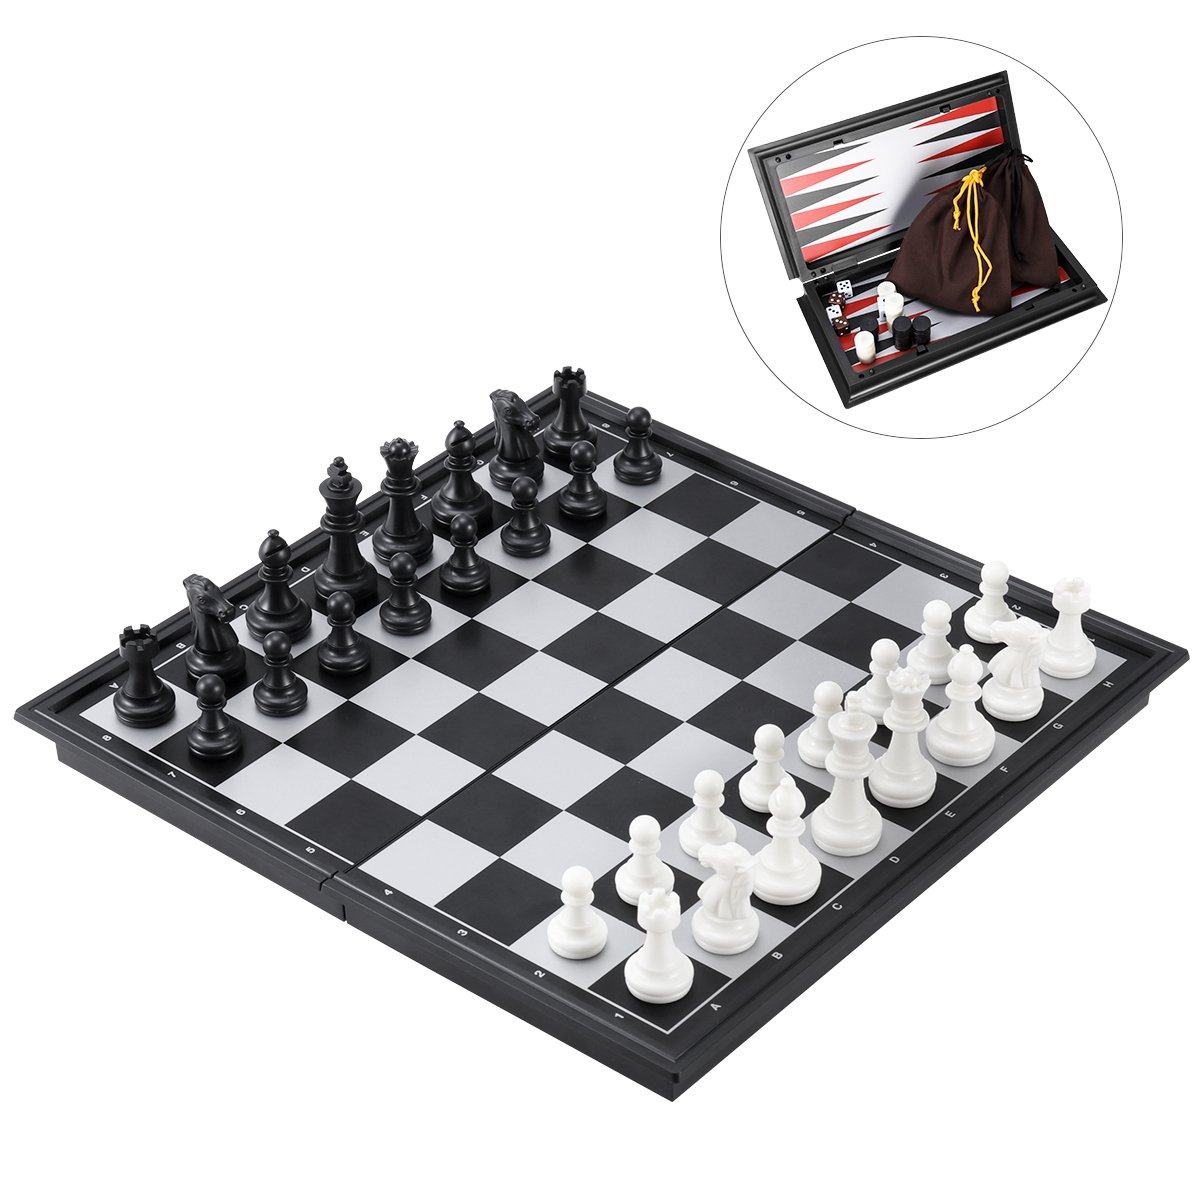 iBaseToy 3 in 1 Magnetic Travel Chess Set for Kids and Adults, Chess Checkers Backgammon Set with Folding Chess Board and Storage Bag, Portable Traditional Chess Game Educational Toys, 9.8'' x 9.8'' by iBaseToy